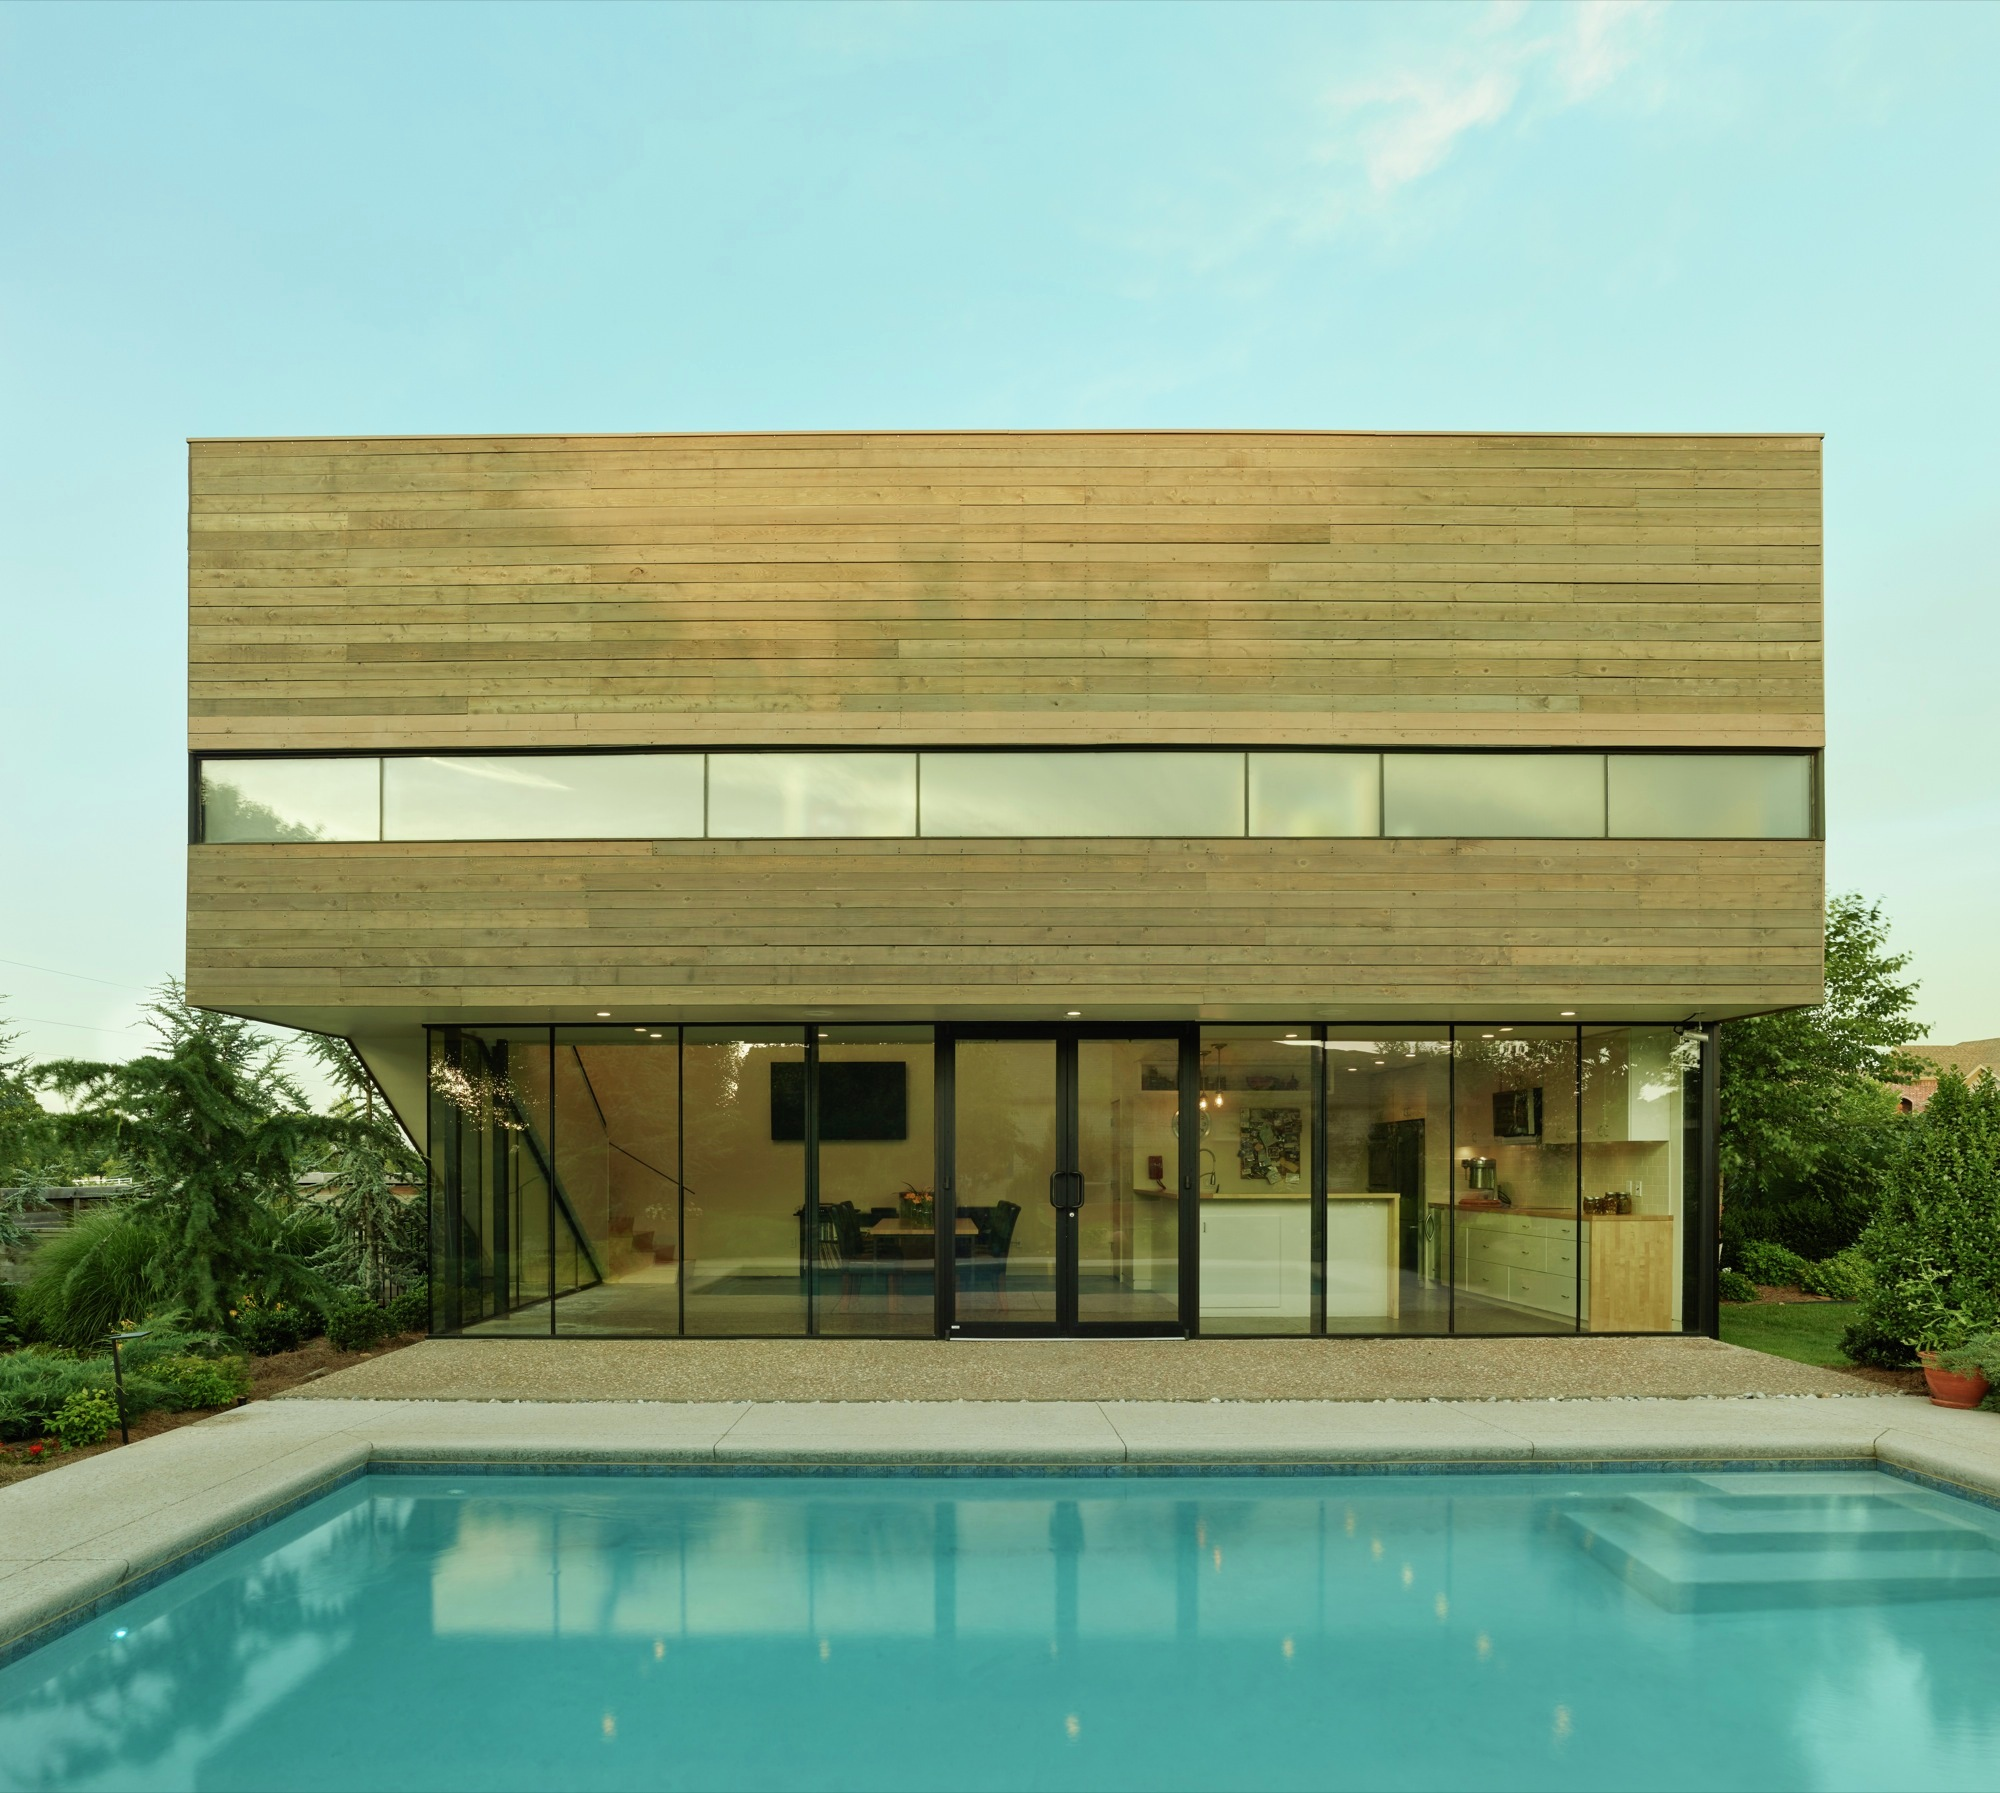 Gallery of srygley pool house marlon blackwell architect 2 for Home designer architectural